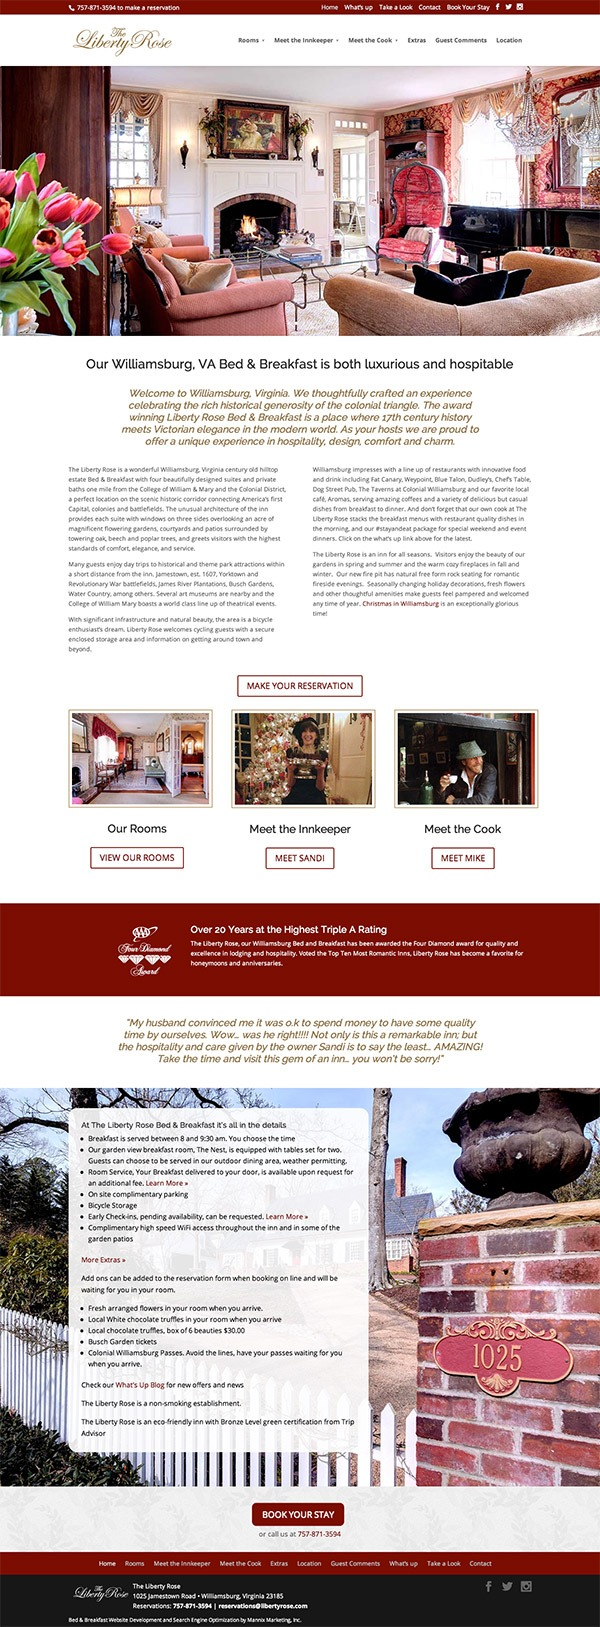 Liberty Rose Bed and Breakfast Website Design and Development